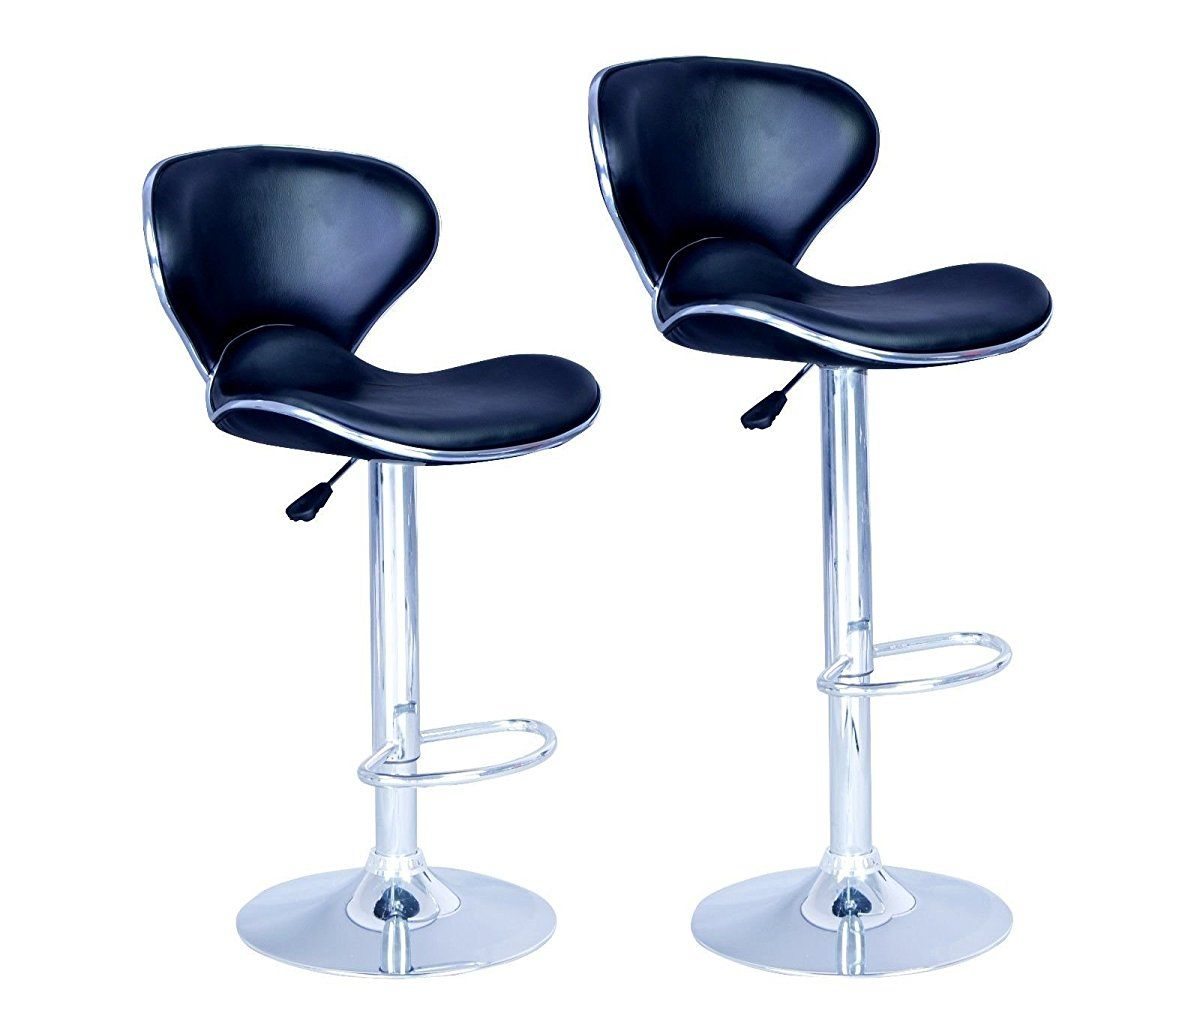 New Modern Adjustable Synthetic Leather Swivel Bar Stools Chairs